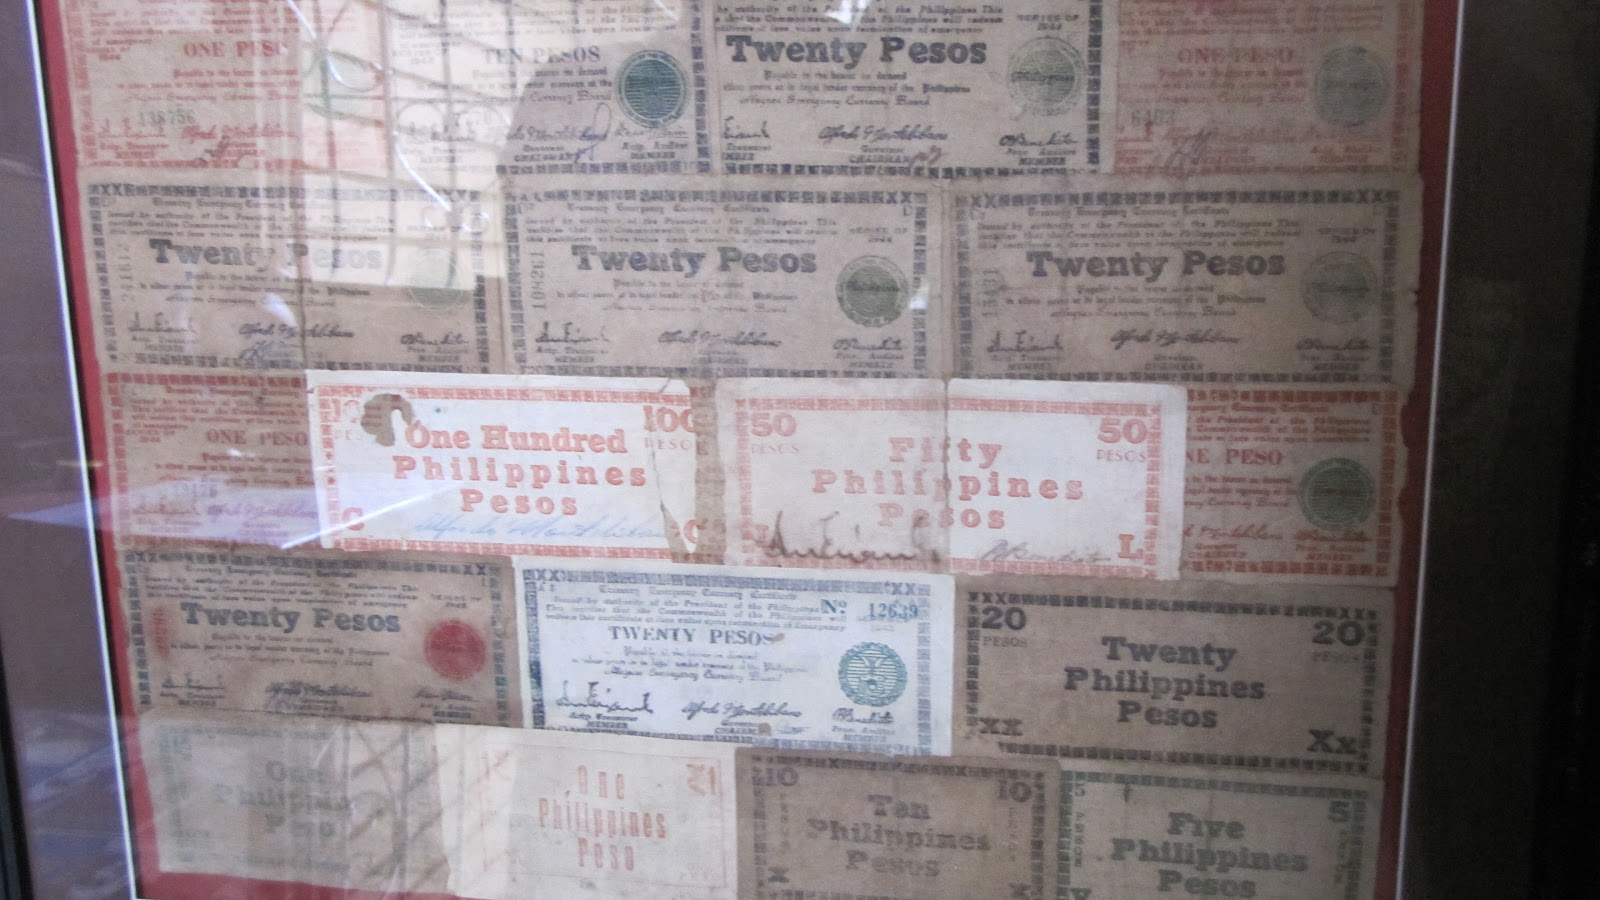 FTW! Blog, Hofileña Museum, Bacolod, #FTWtravels, old paper bills